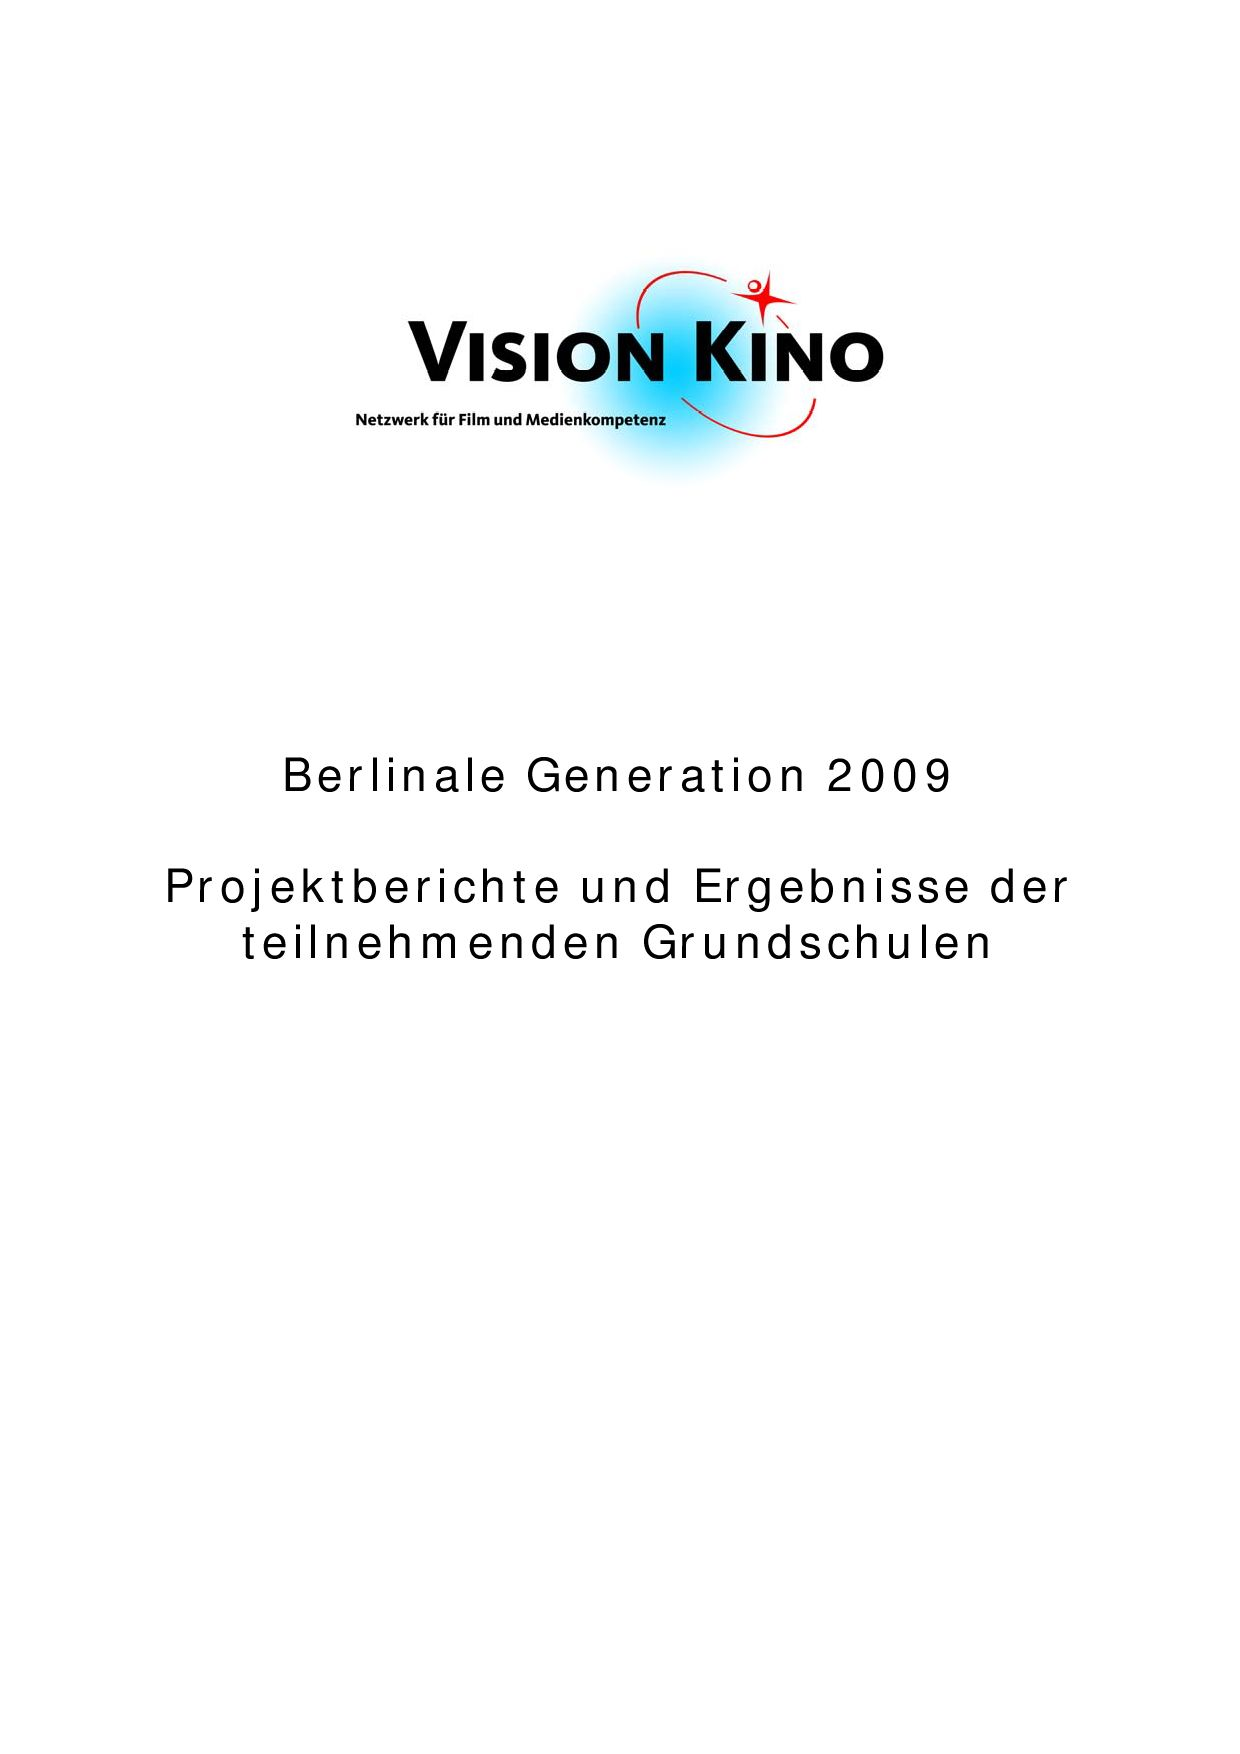 Berlinale09 Berichte OS by VISION KINO - issuu